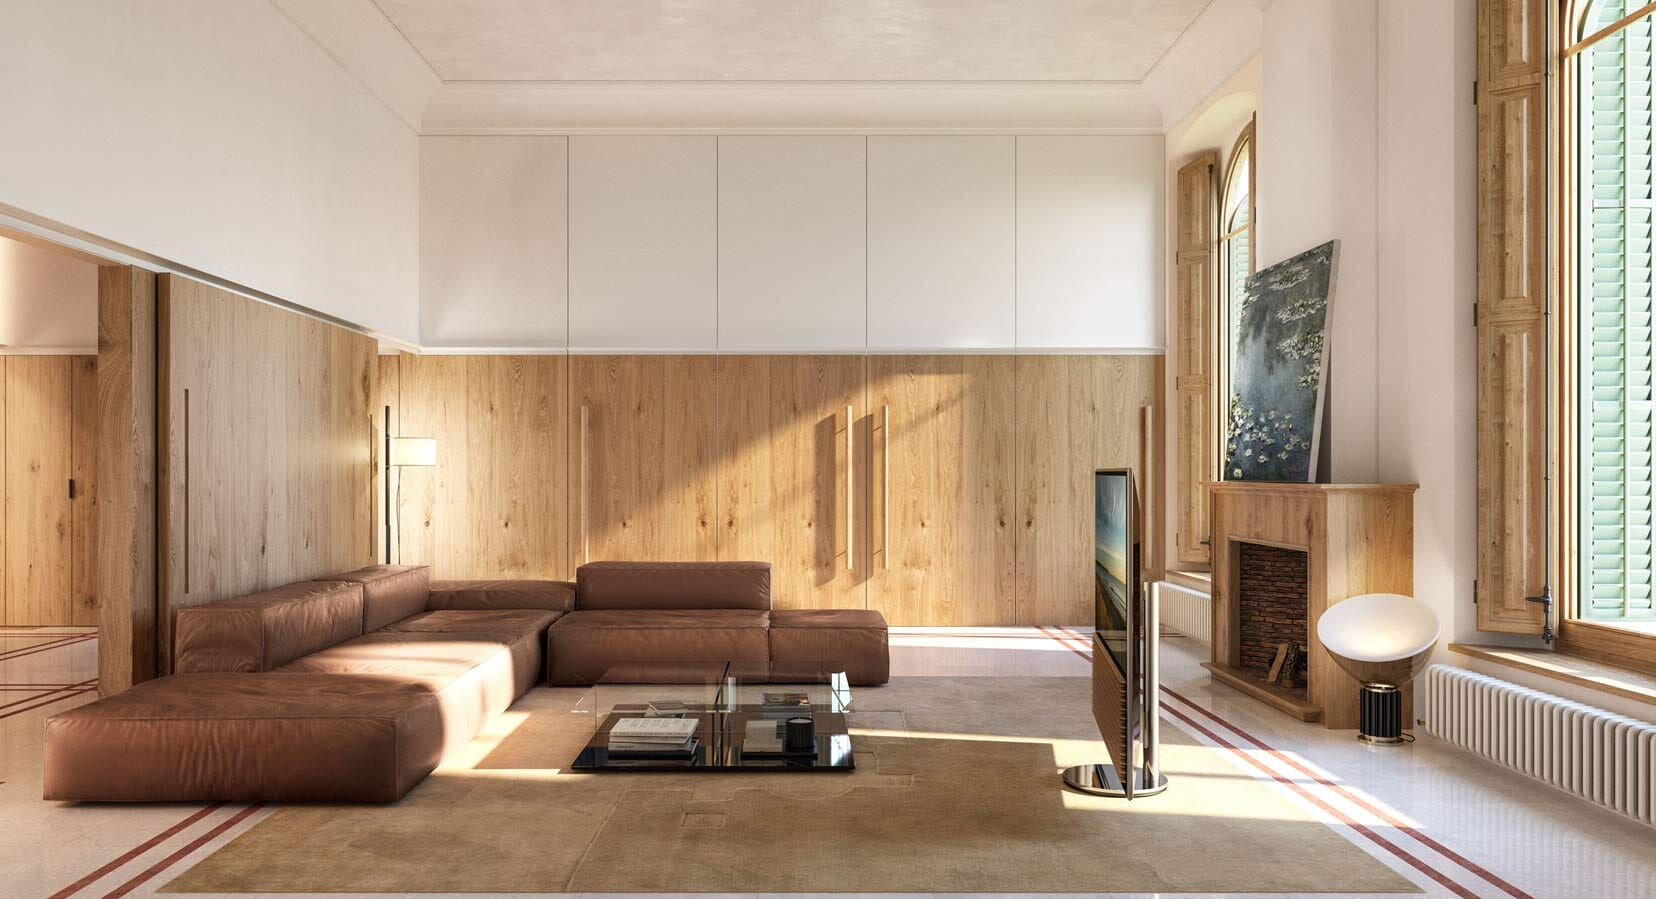 Barcelona Modernism At Its Best - Take A Look Inside 'Can Limona'